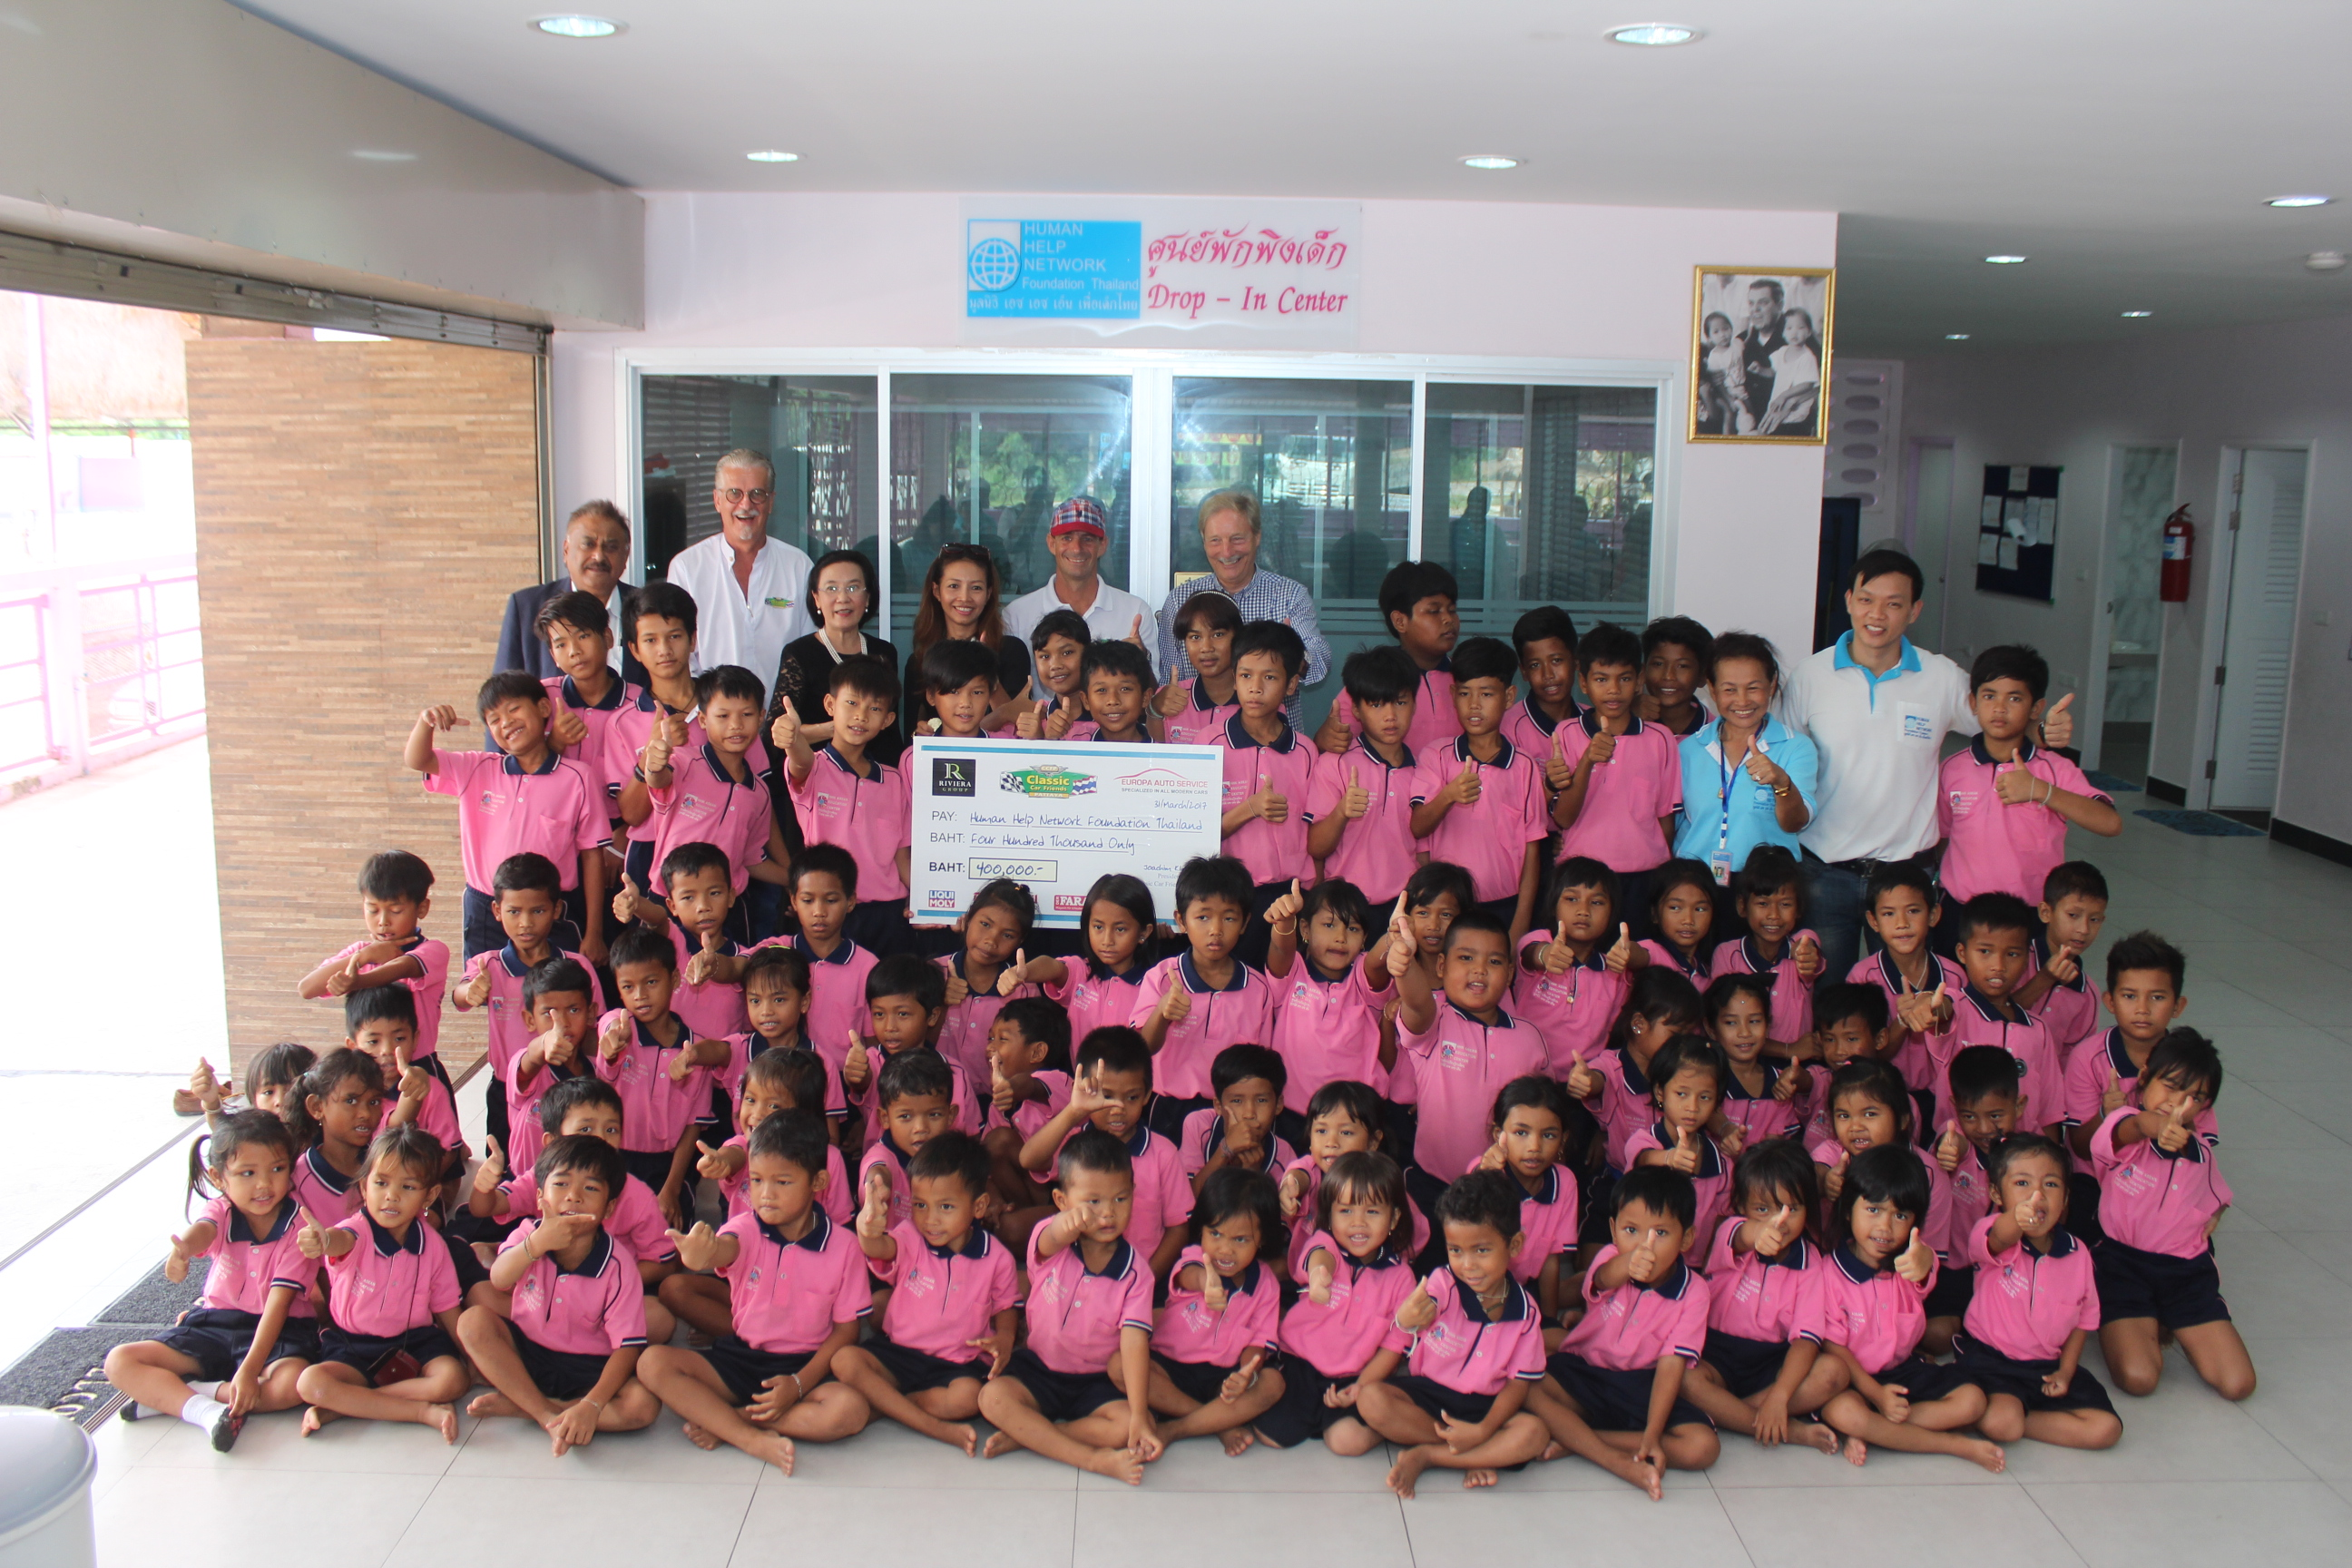 A group photo with the children from the Human Help Network foundation with the organizers and sponsors of the event.